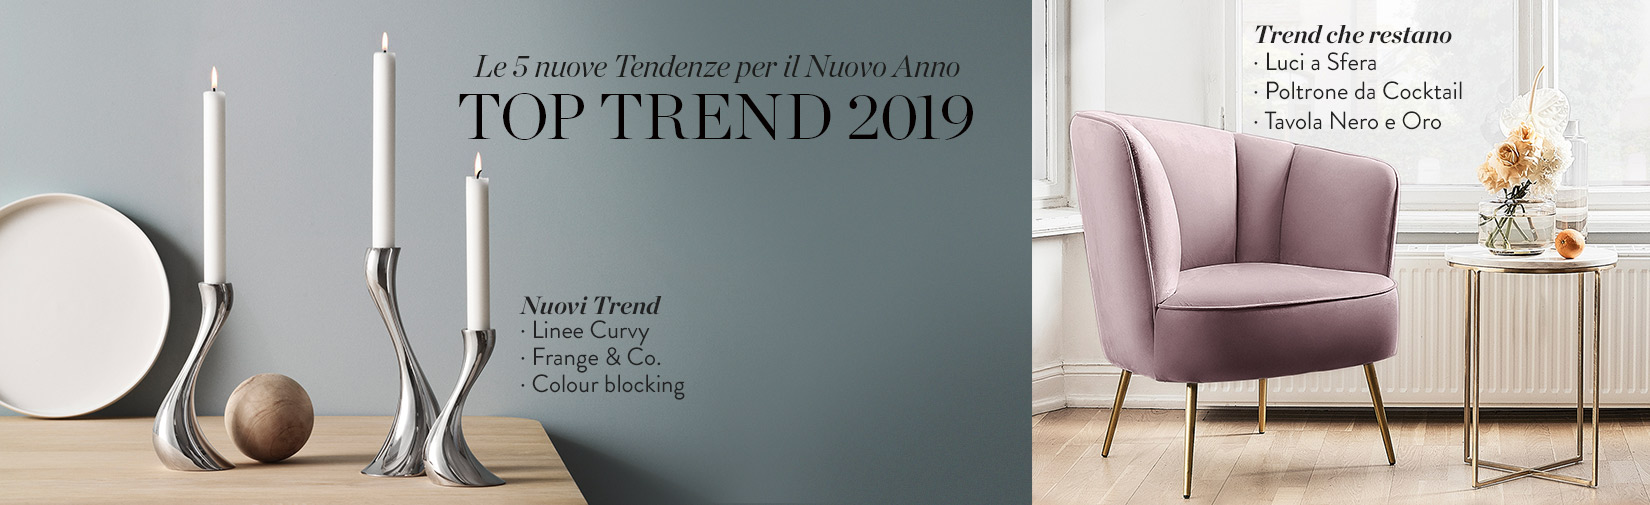 Poltrone Westwing Top Trend 2019 Westwingnow